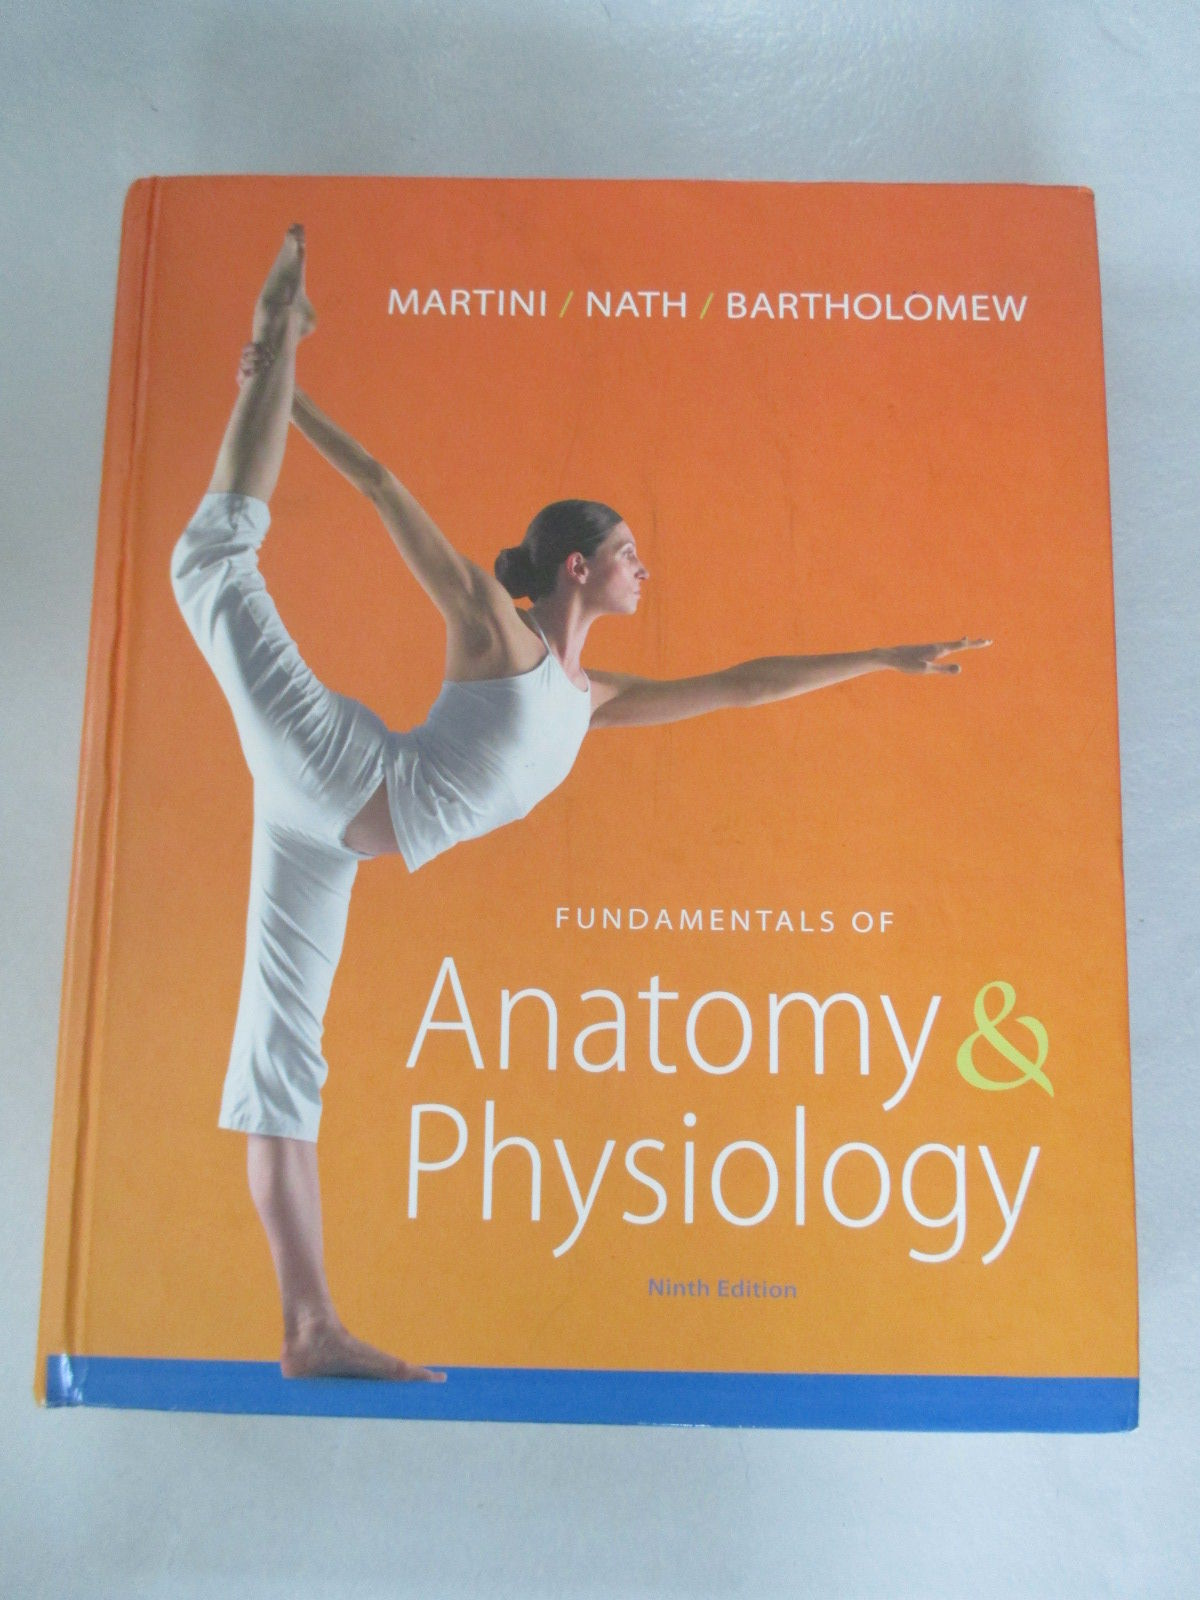 9780321709332 - Fundamentals of Anatomy & Physiology (9th Edition ...